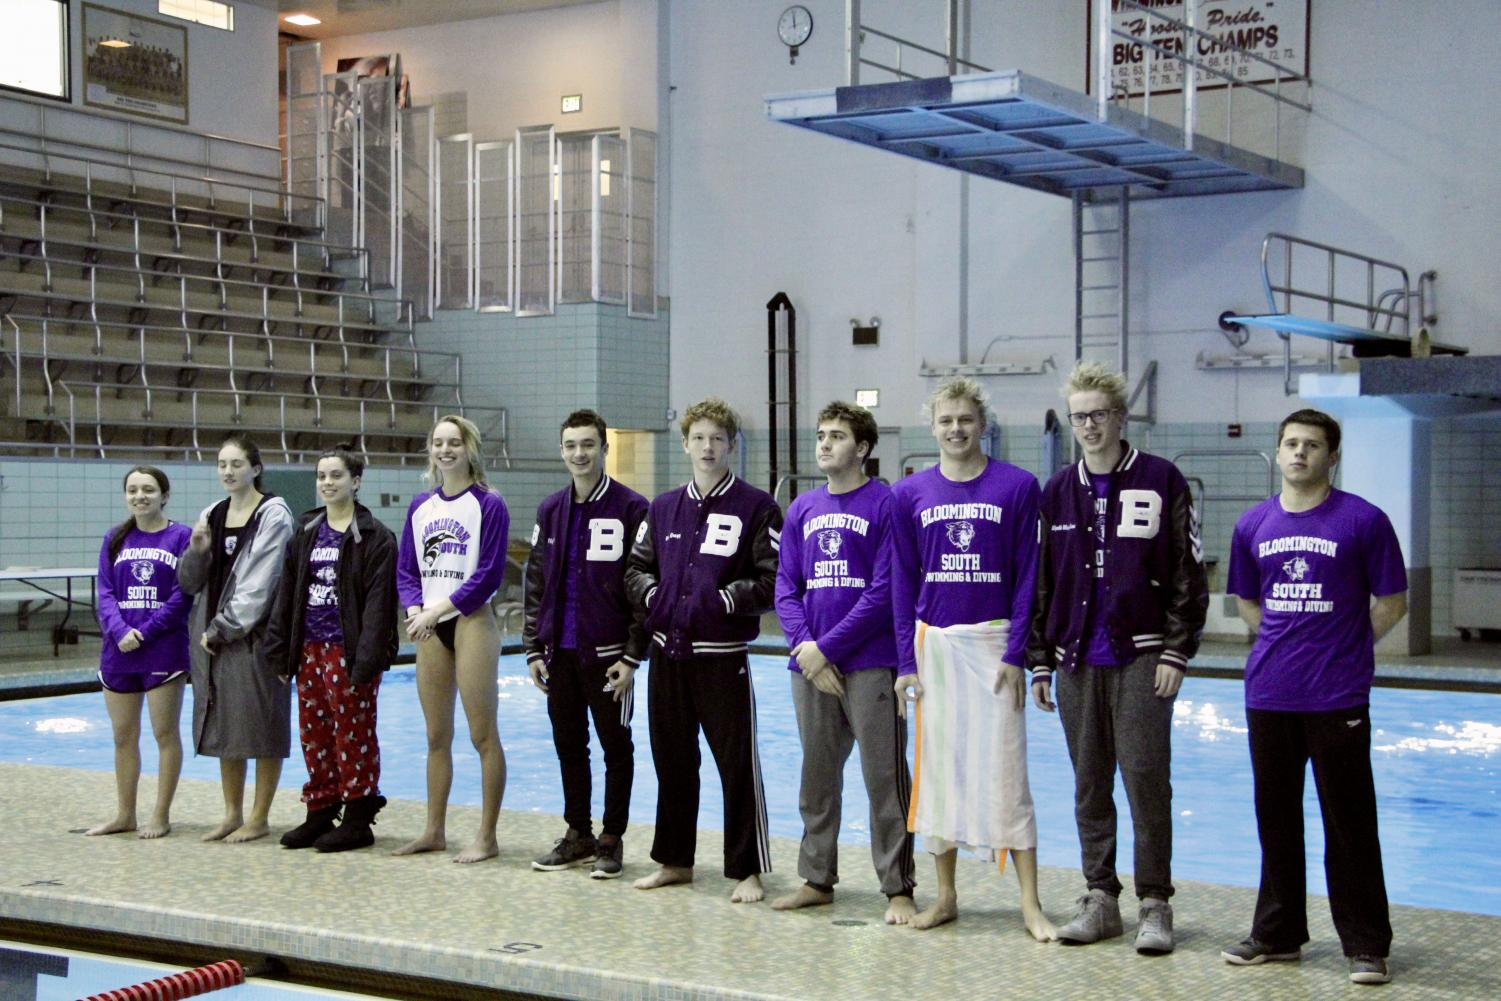 South's seniors (L-R: Caitlin Betar, Emily Long, Nicole Perry, Julia Wolf, Elijah Earle, Max Grogg, Creighton King, Luke Lobring, Wyeth Michealsen, and Wesley Webb) are honored during the meet. Both the boys and girls defeated North by large margins, and placed first in every event.